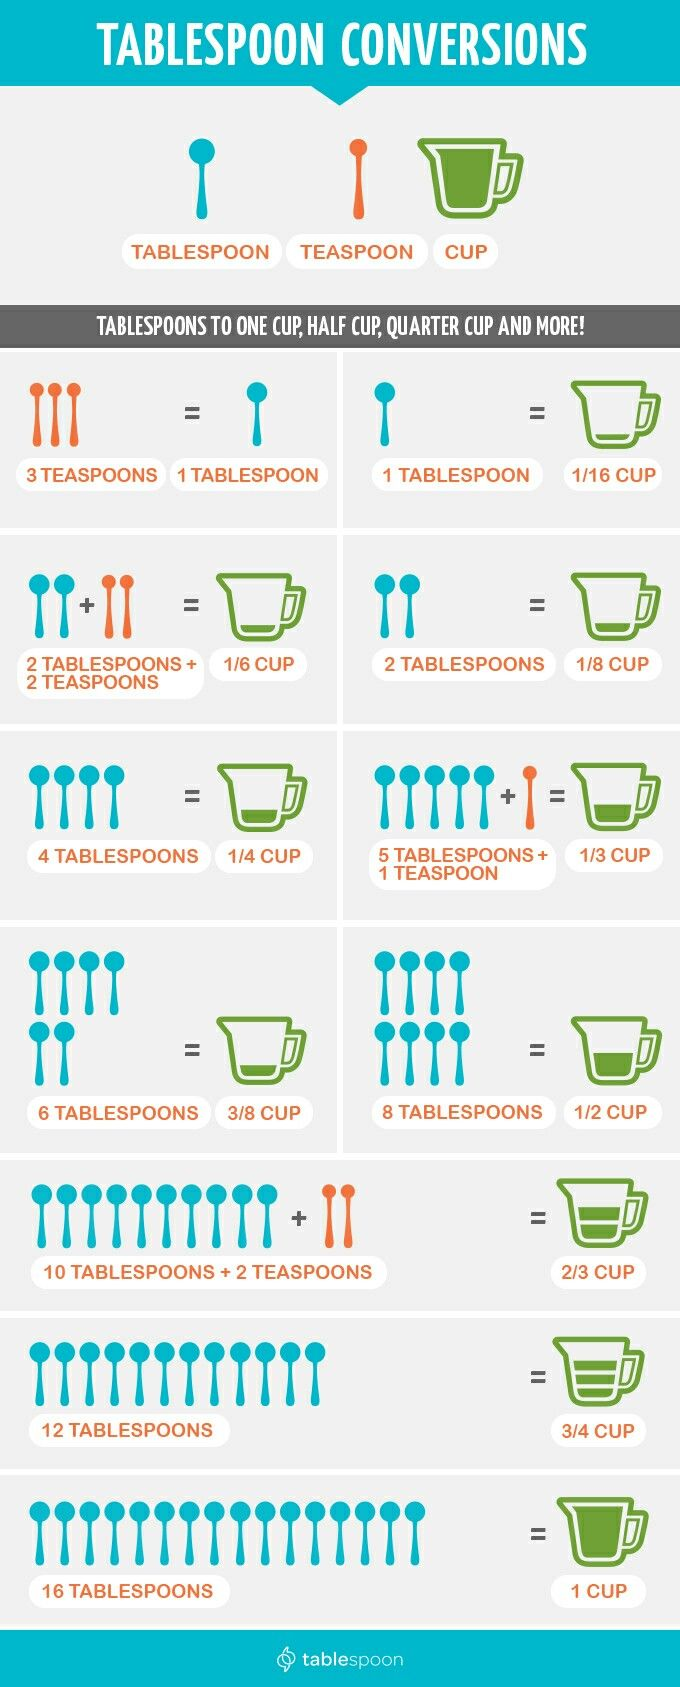 Spoon cup conversions my style pinterest spoon cups and spoon cup conversions geenschuldenfo Choice Image